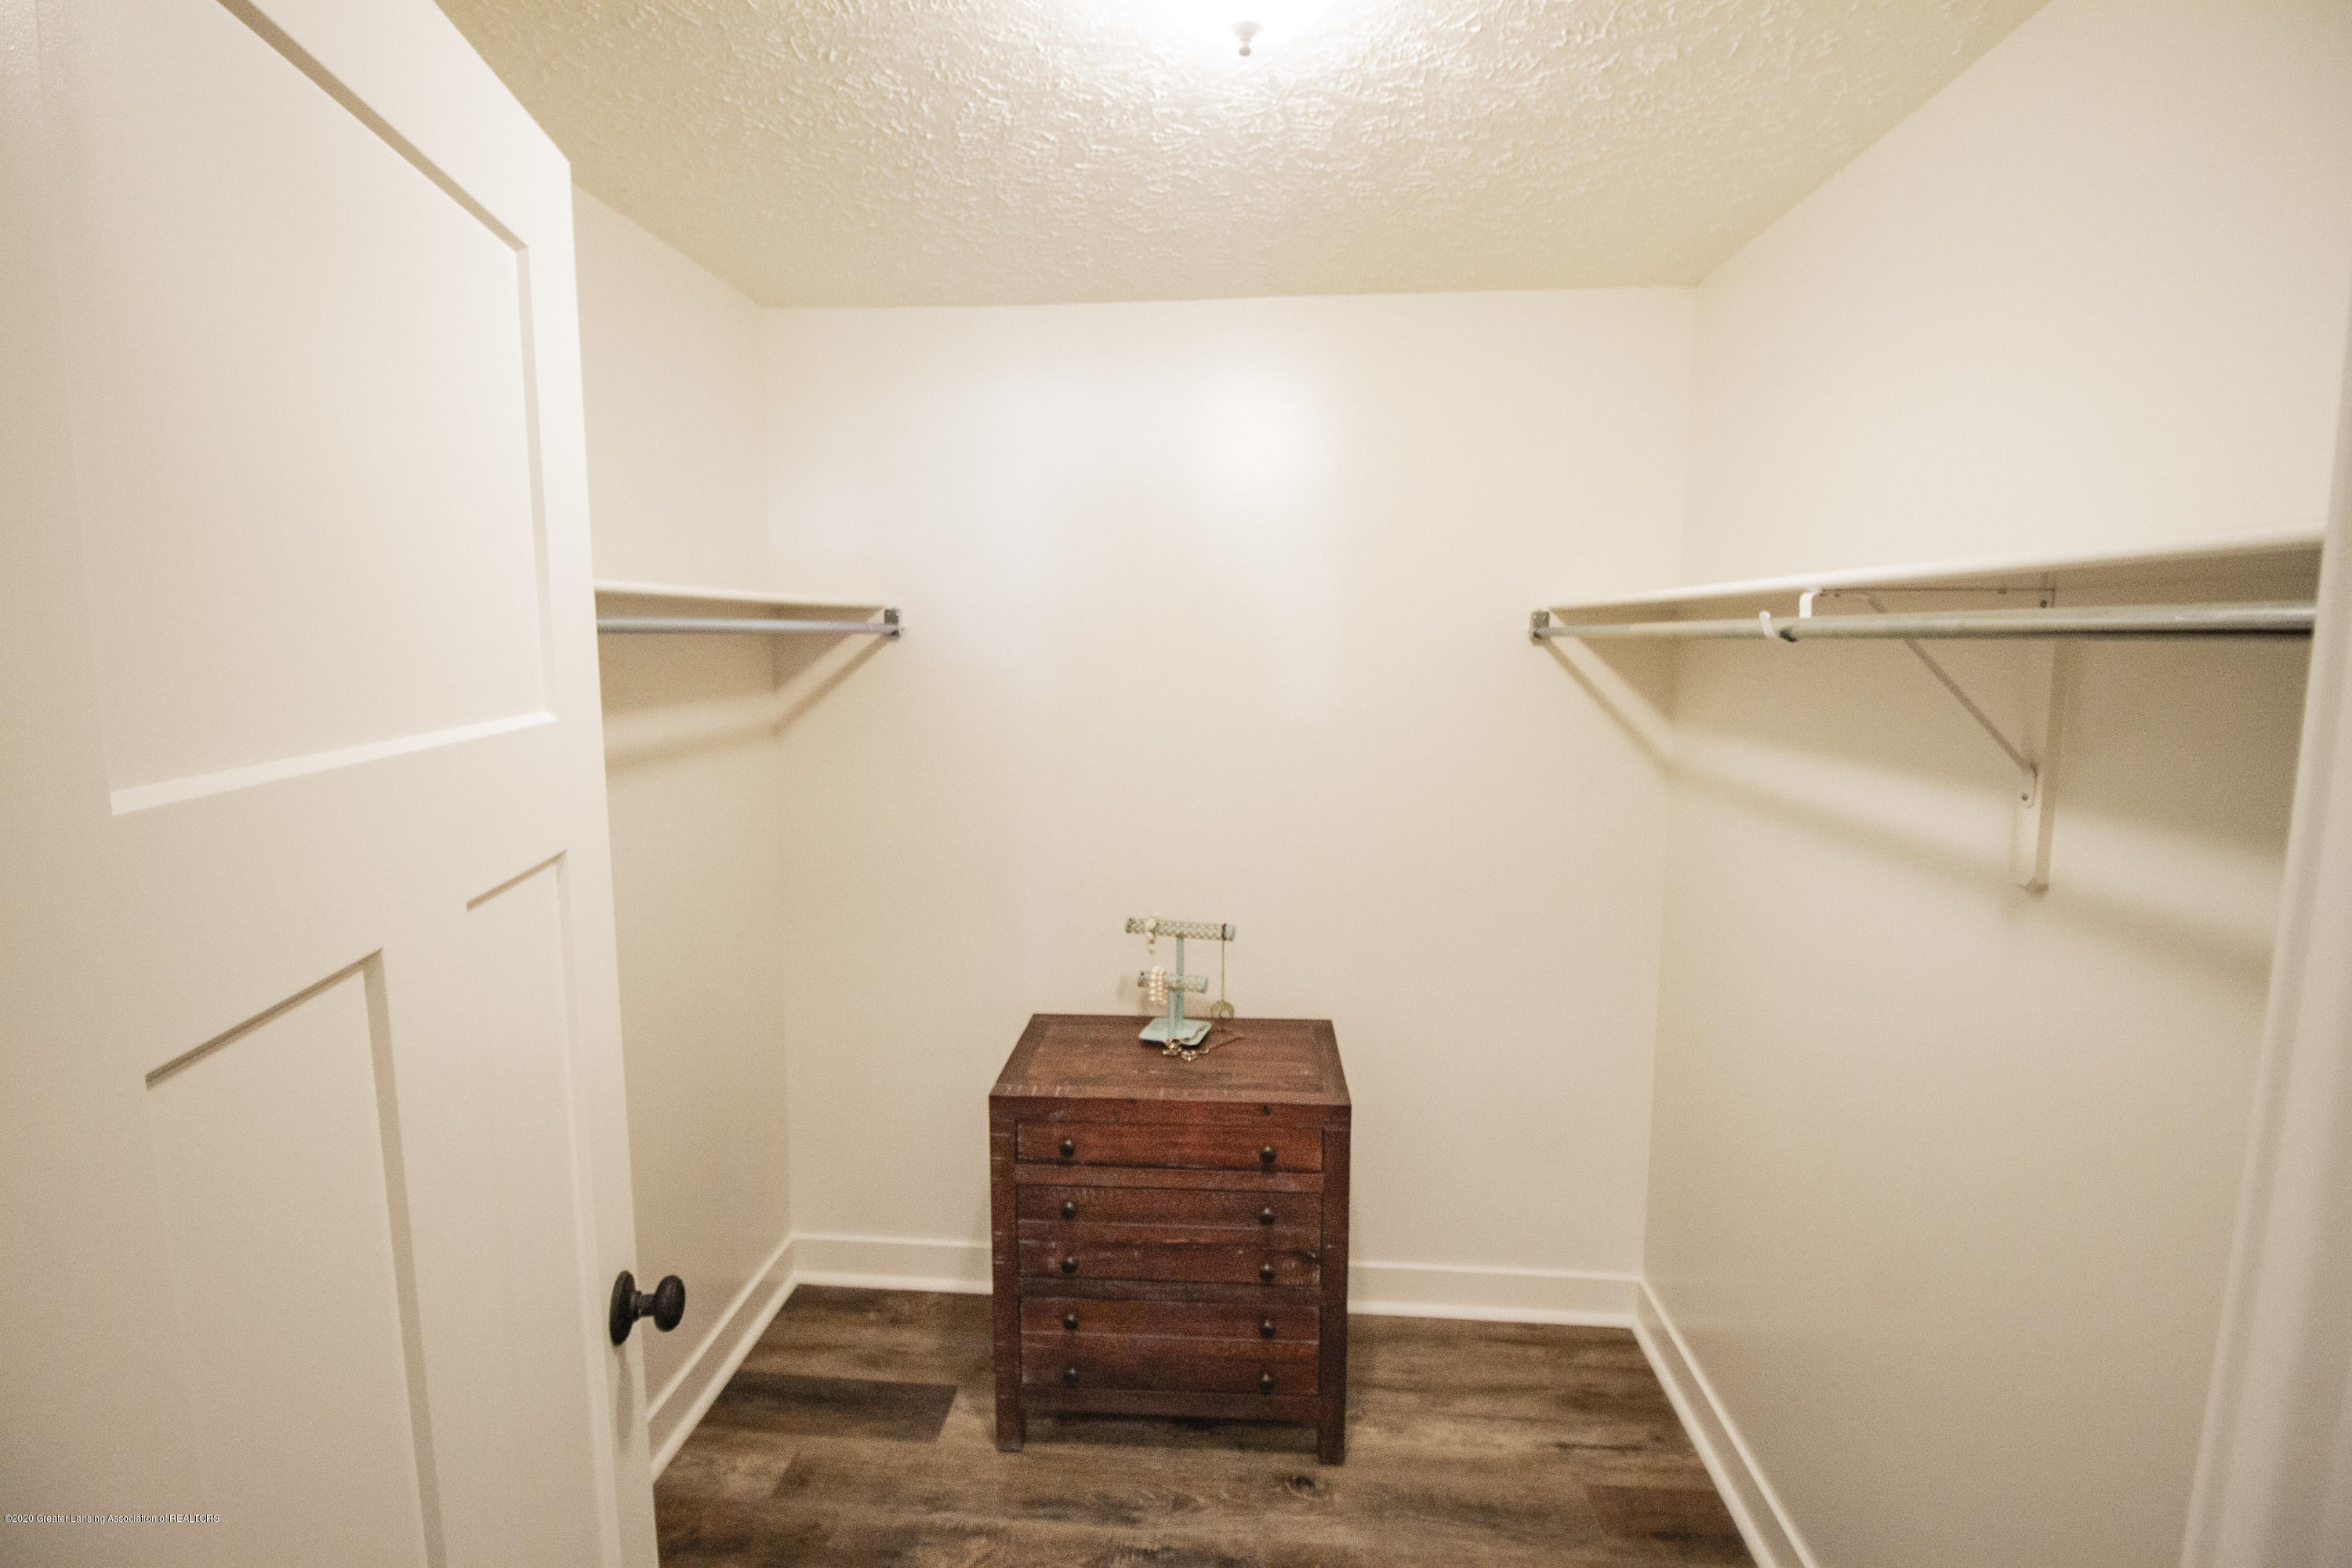 211 Russell St - 21. Russell Master Closet - 21